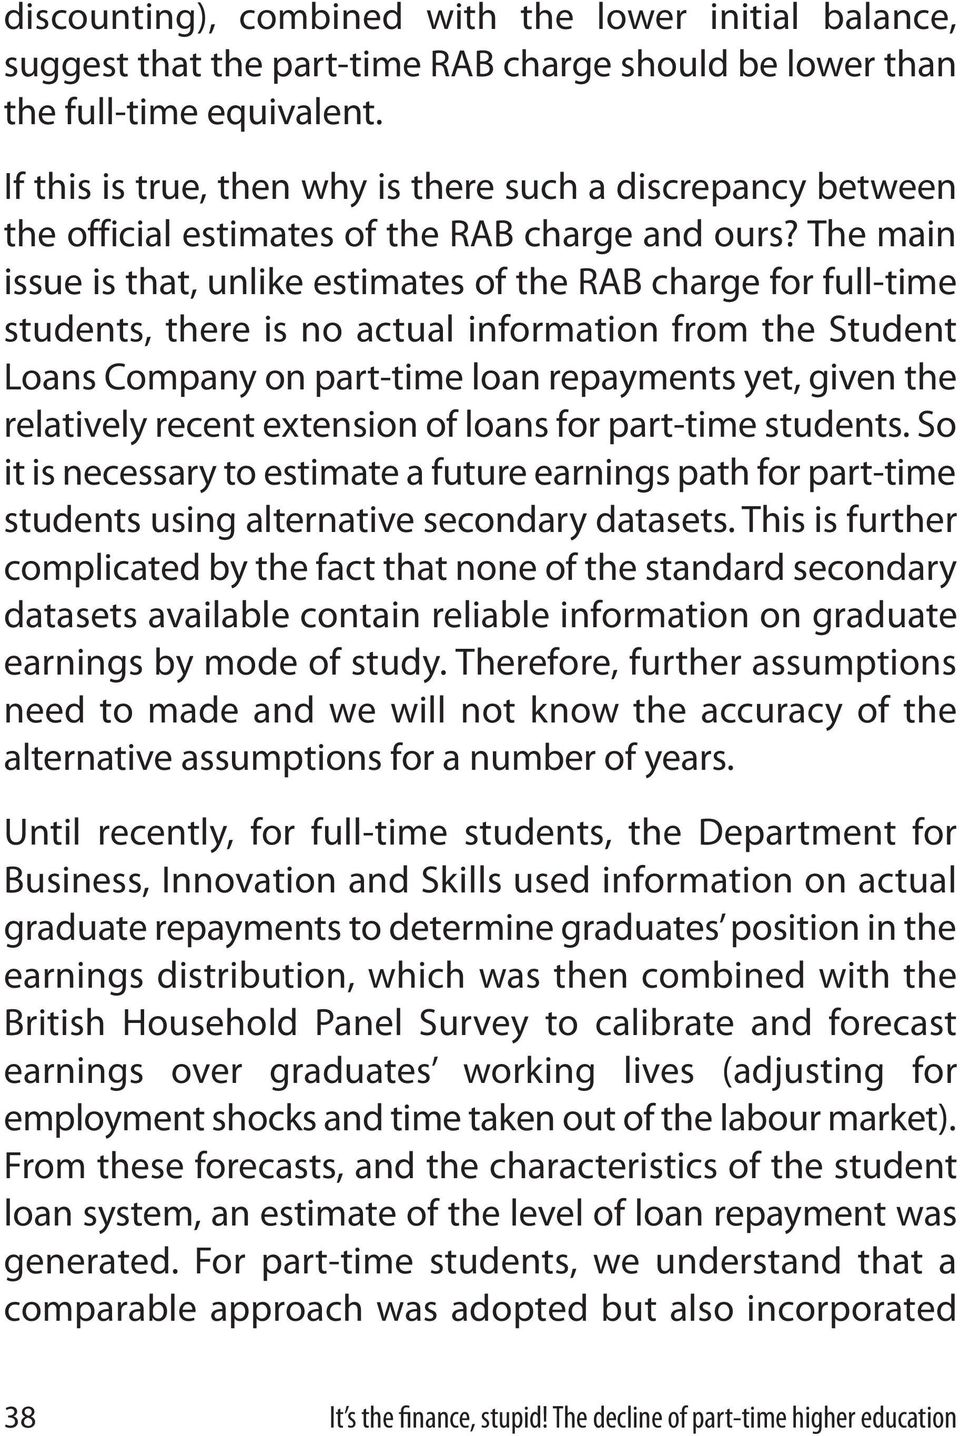 The main issue is that, unlike estimates of the RAB charge for full-time students, there is no actual information from the Student Loans Company on part-time loan repayments yet, given the relatively